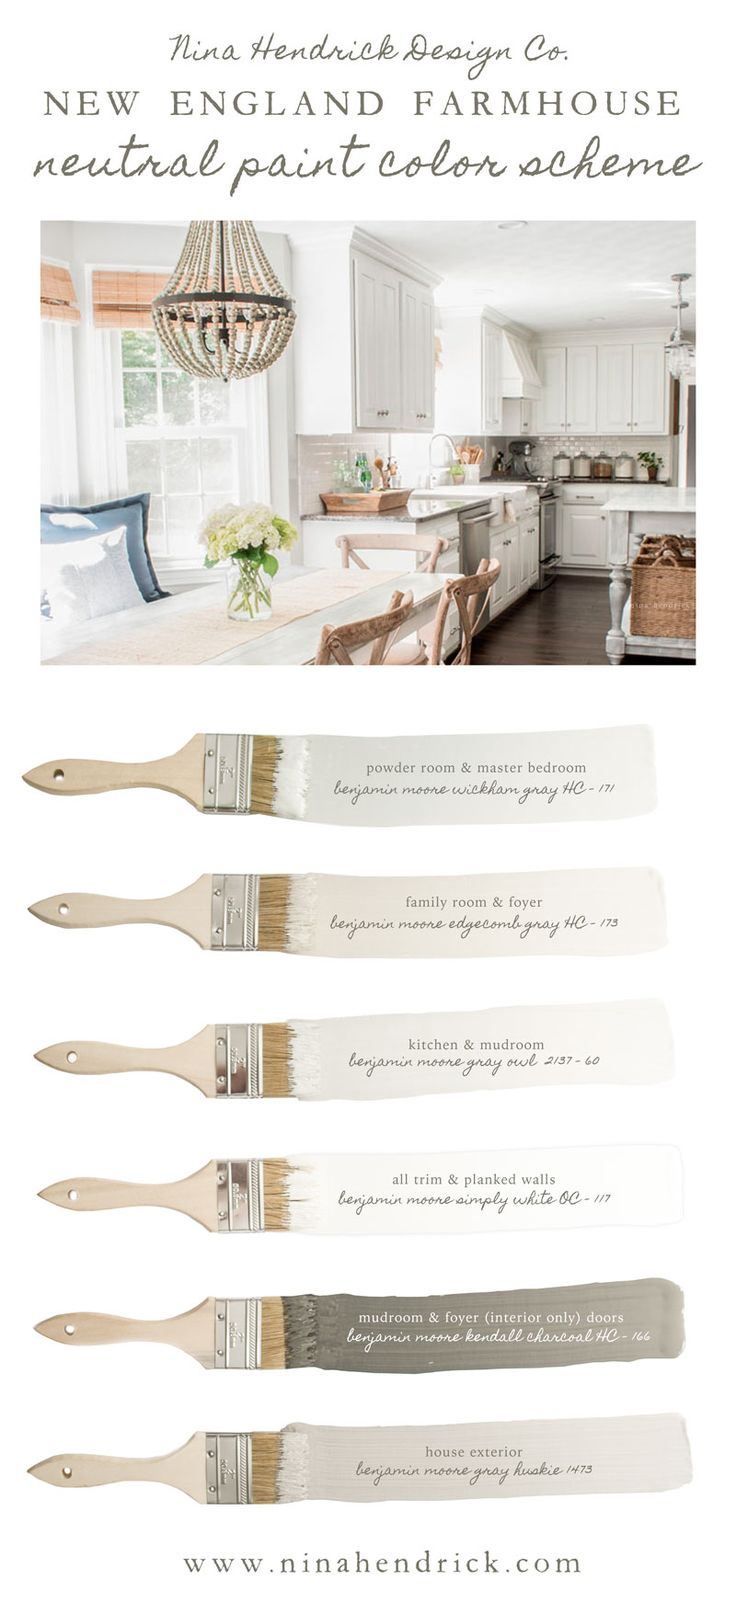 Nina Hendrick Design Co's New England Farmhouse Neutral Paint Color Scheme | A neutral and soothing color scheme for your entire home using a combination of natural colors.